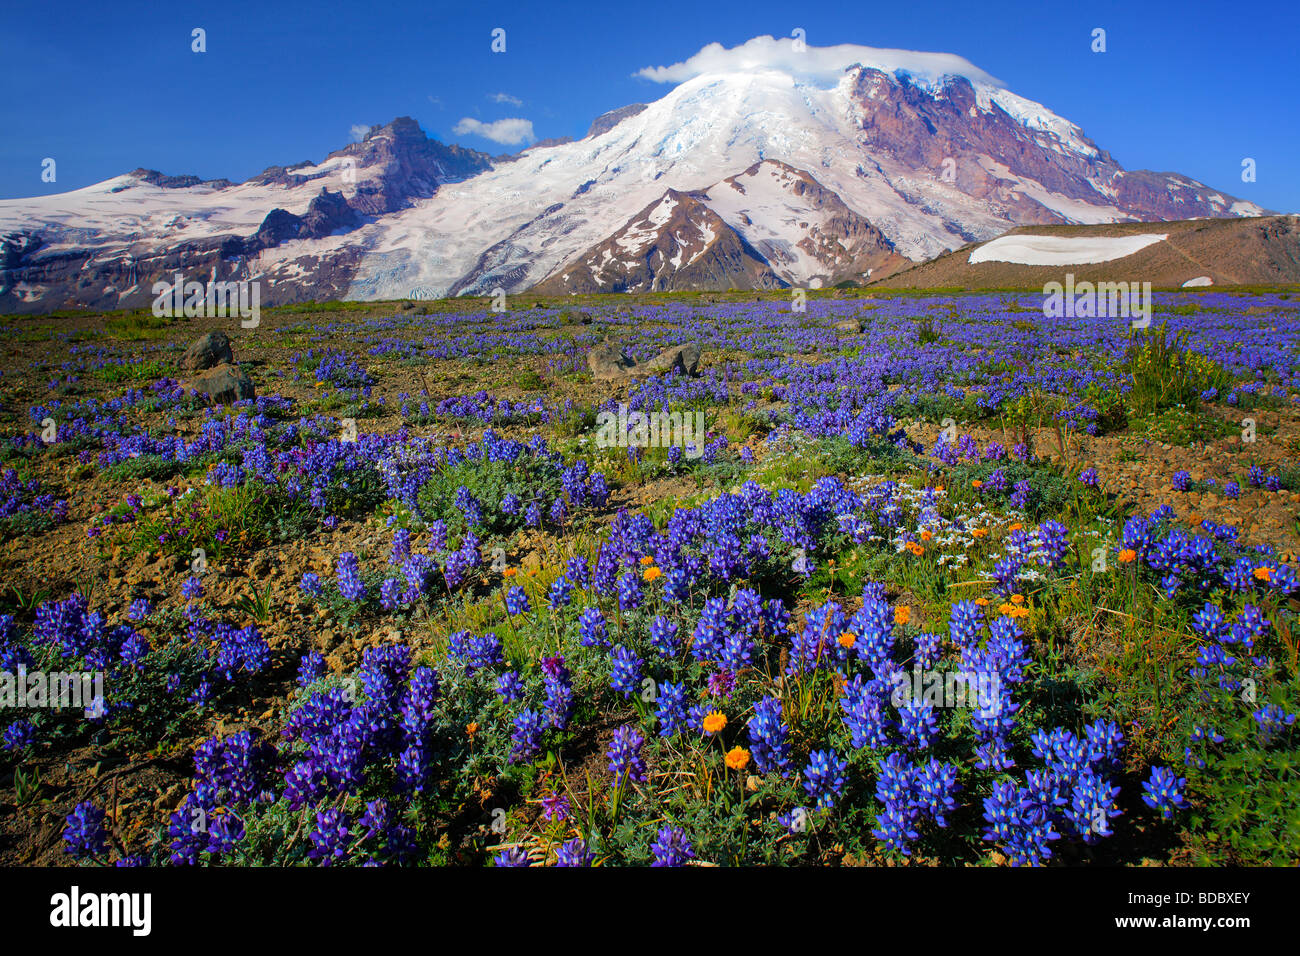 Carpet of lupines on 1st Burroughs Mountain in Mount Rainier National Park in Western Washington, USA - Stock Image